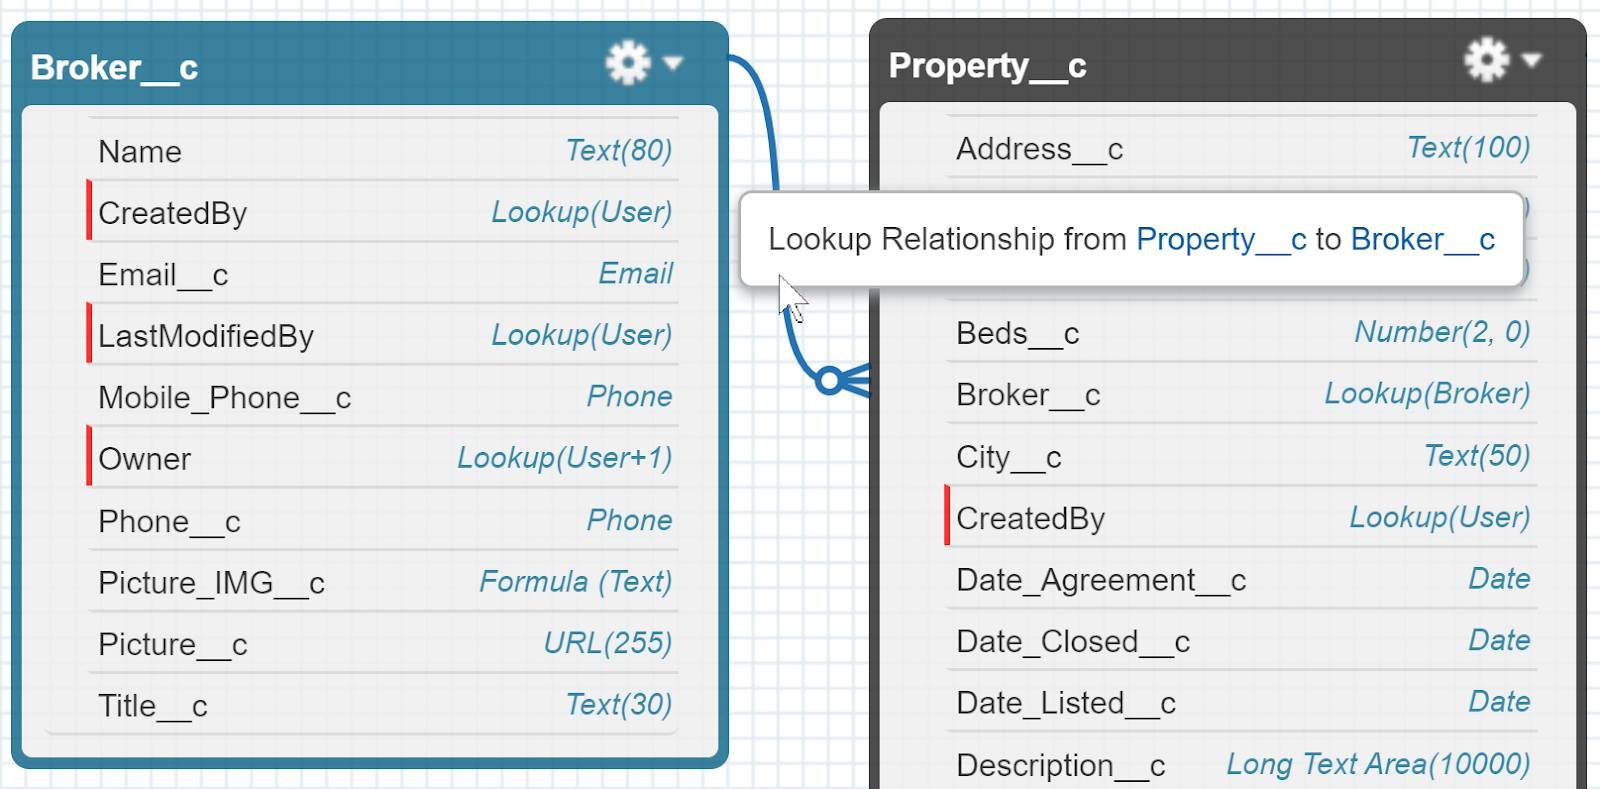 The Broker__c and Property__c custom objects in the Schema Builder. The Broker__c custom field on the Property__c object has a lookup relationship from the Property__c custom object to the Broker__c custom object.